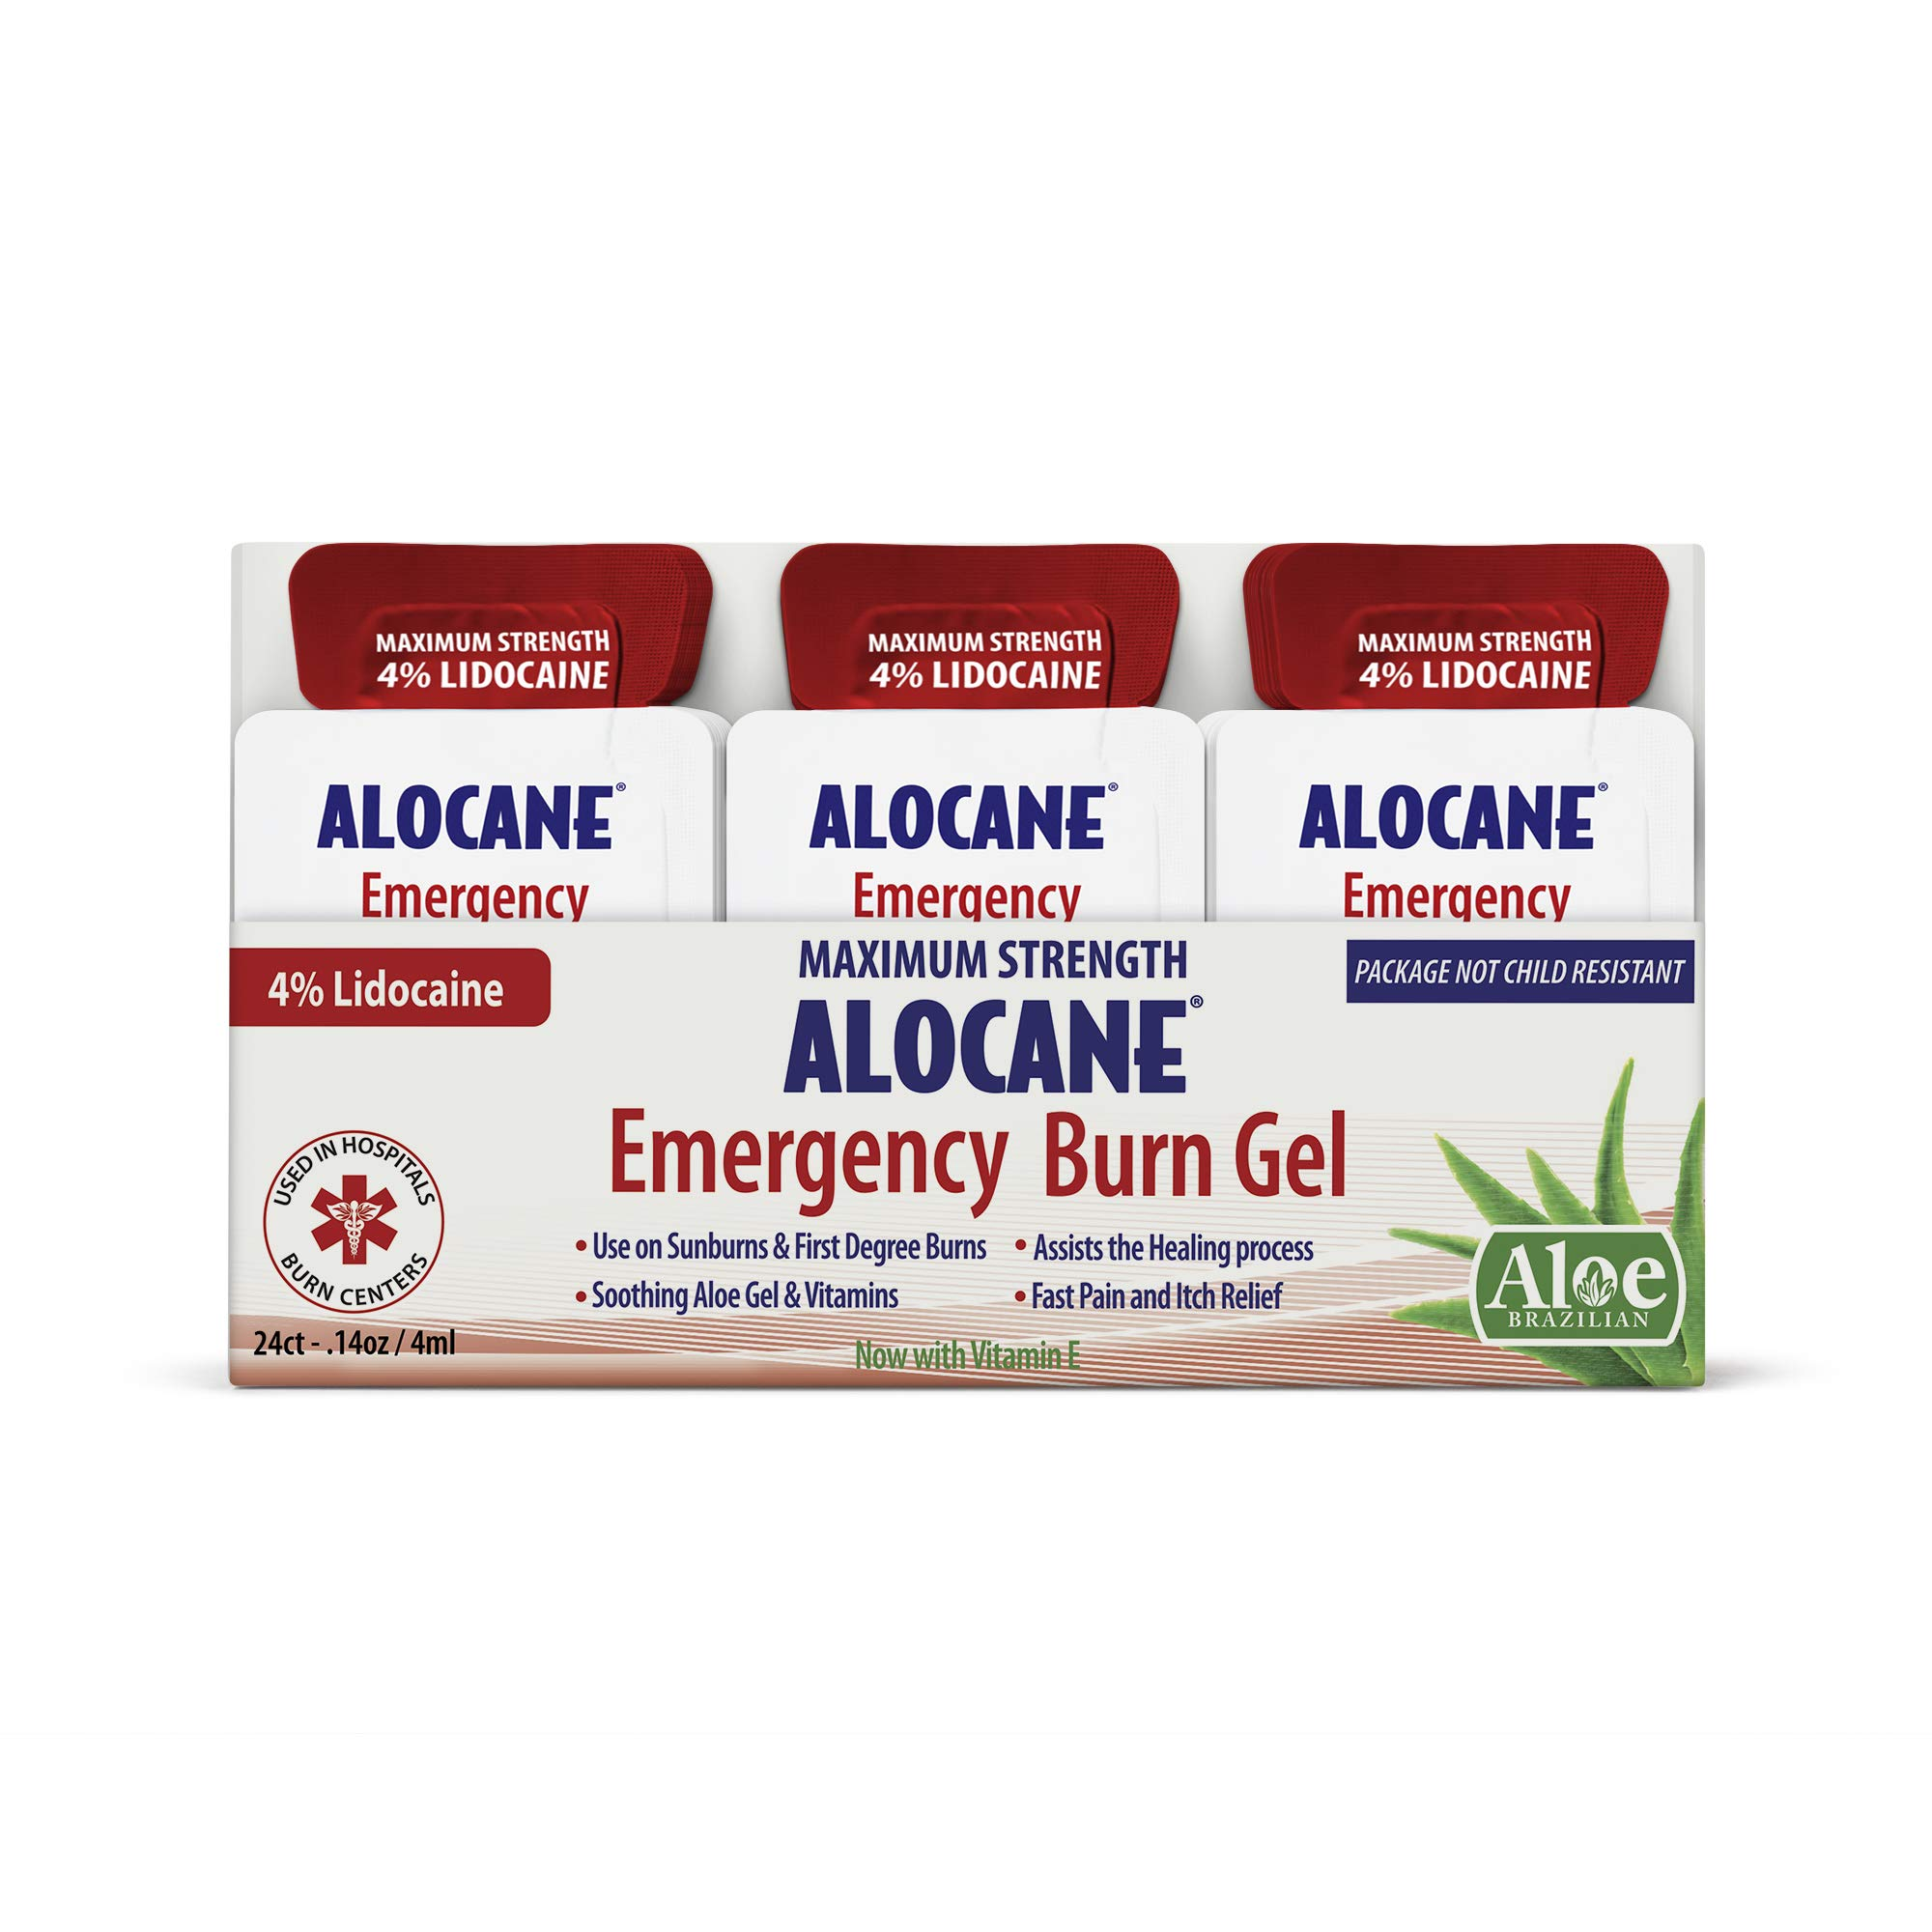 ALOCANE® Emergency Burn Gel Maximum Strength 4% Lidocaine Individual Use Packets,Commercial Grade, for Restaurants, Manufacturing, Other Heat Related Work environments, for Commercial Use Only, 24 Ct by Alocane